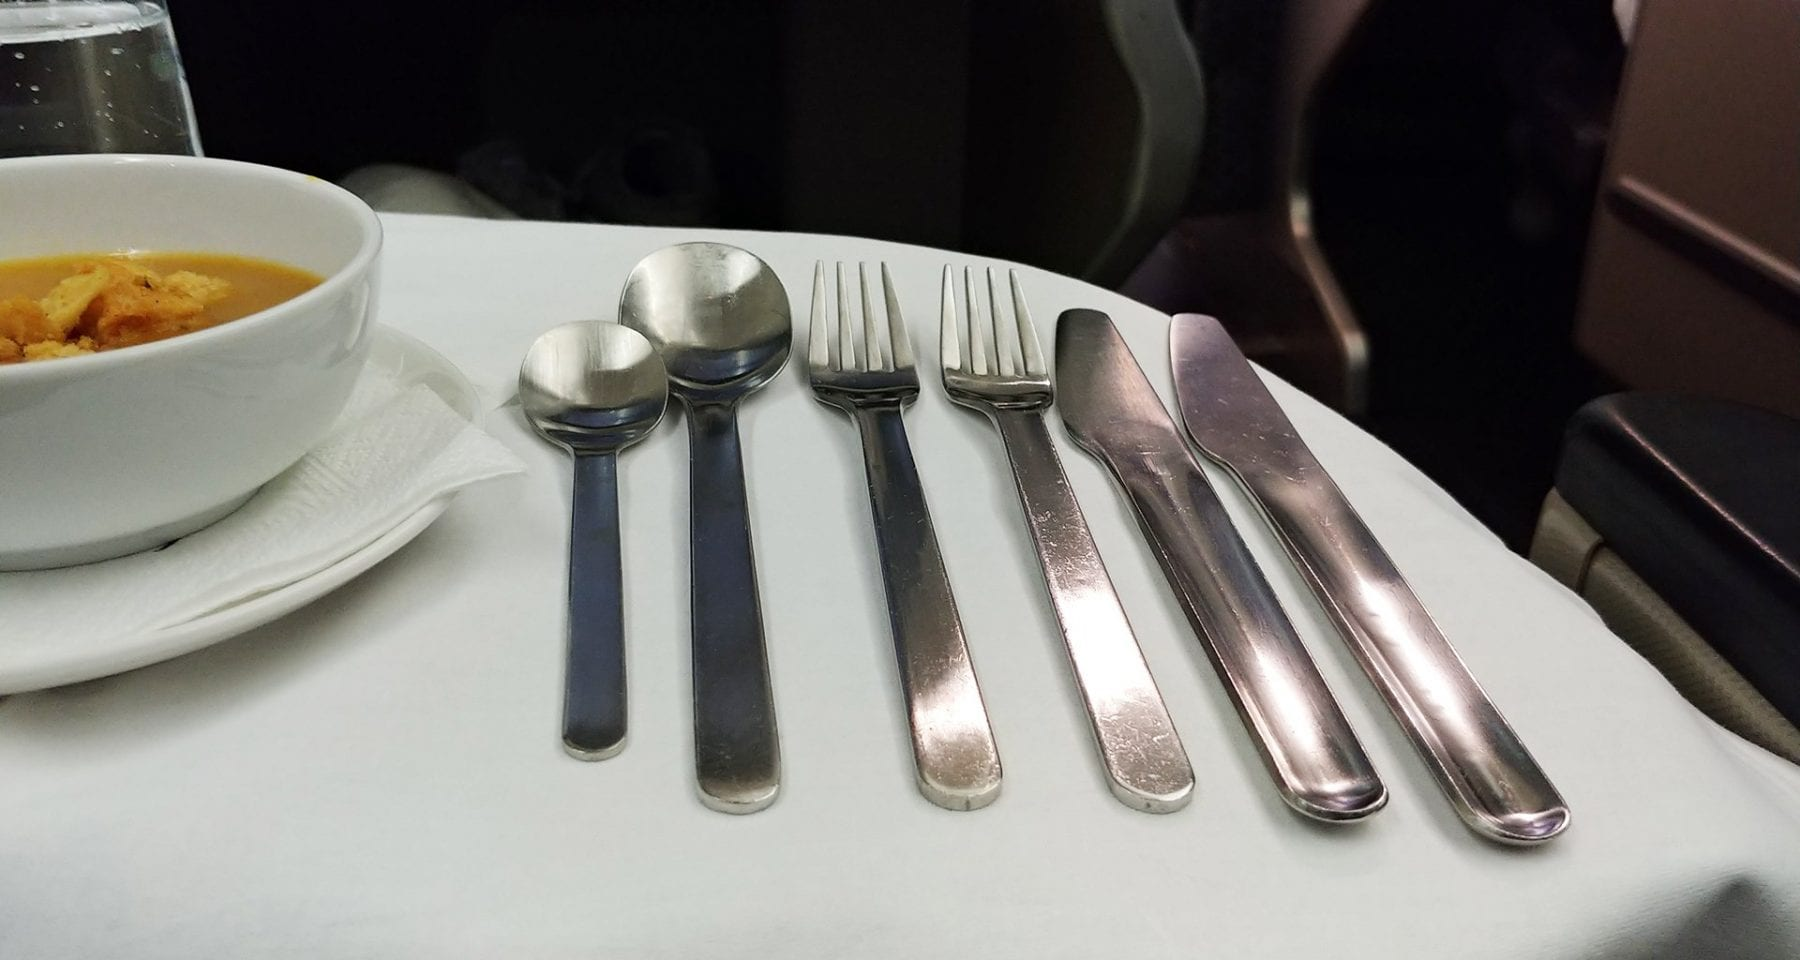 Qantas Cutlery Qantas Business Class Melbourne to Perth